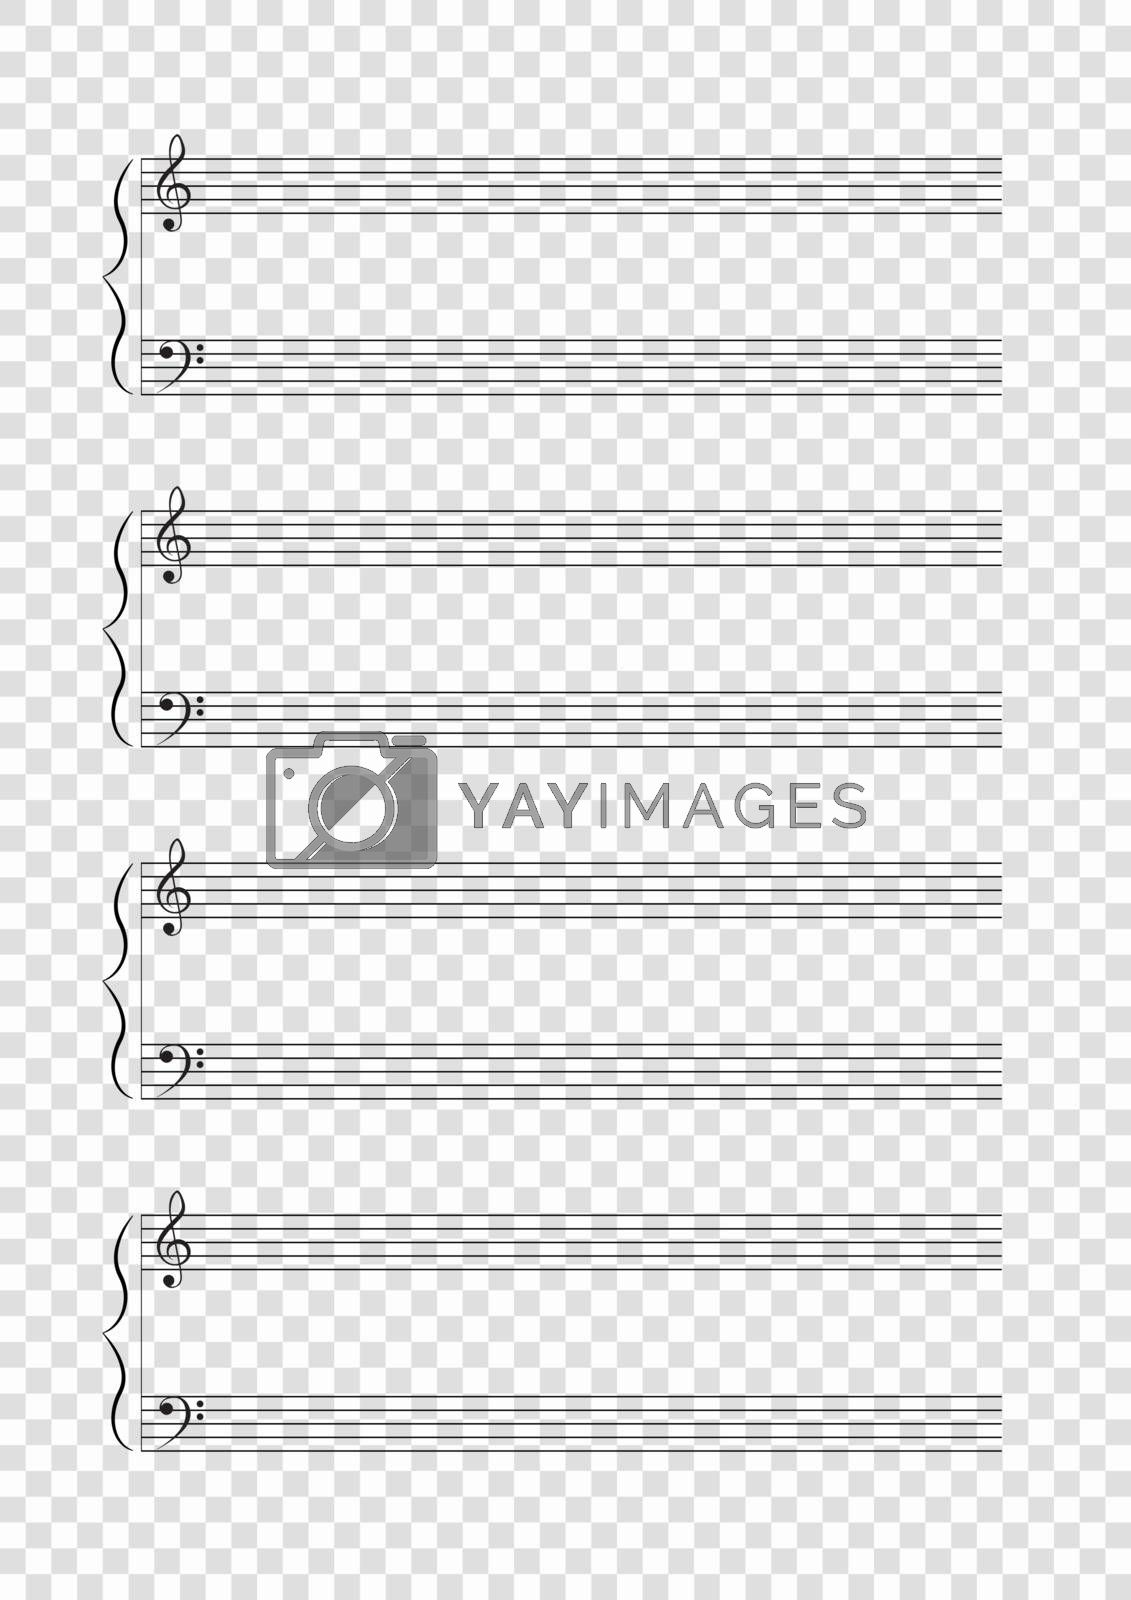 Blank A4 music notes with treble and bass clef. Vector illustartion